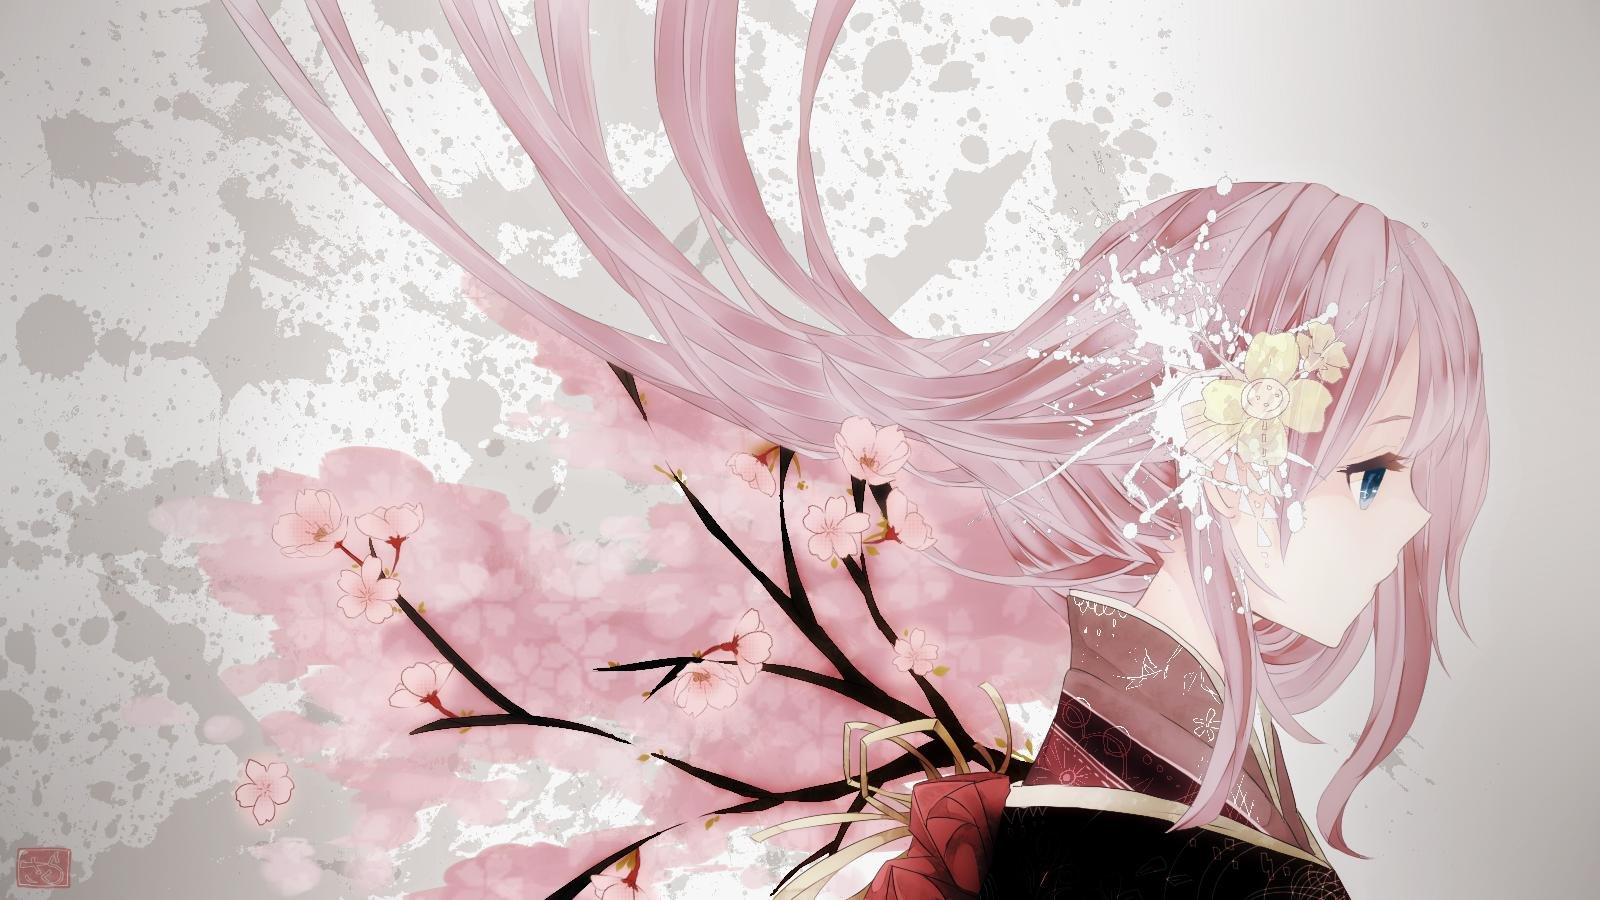 High resolution Luka Megurine hd 1600x900 wallpaper ID:1712 for computer